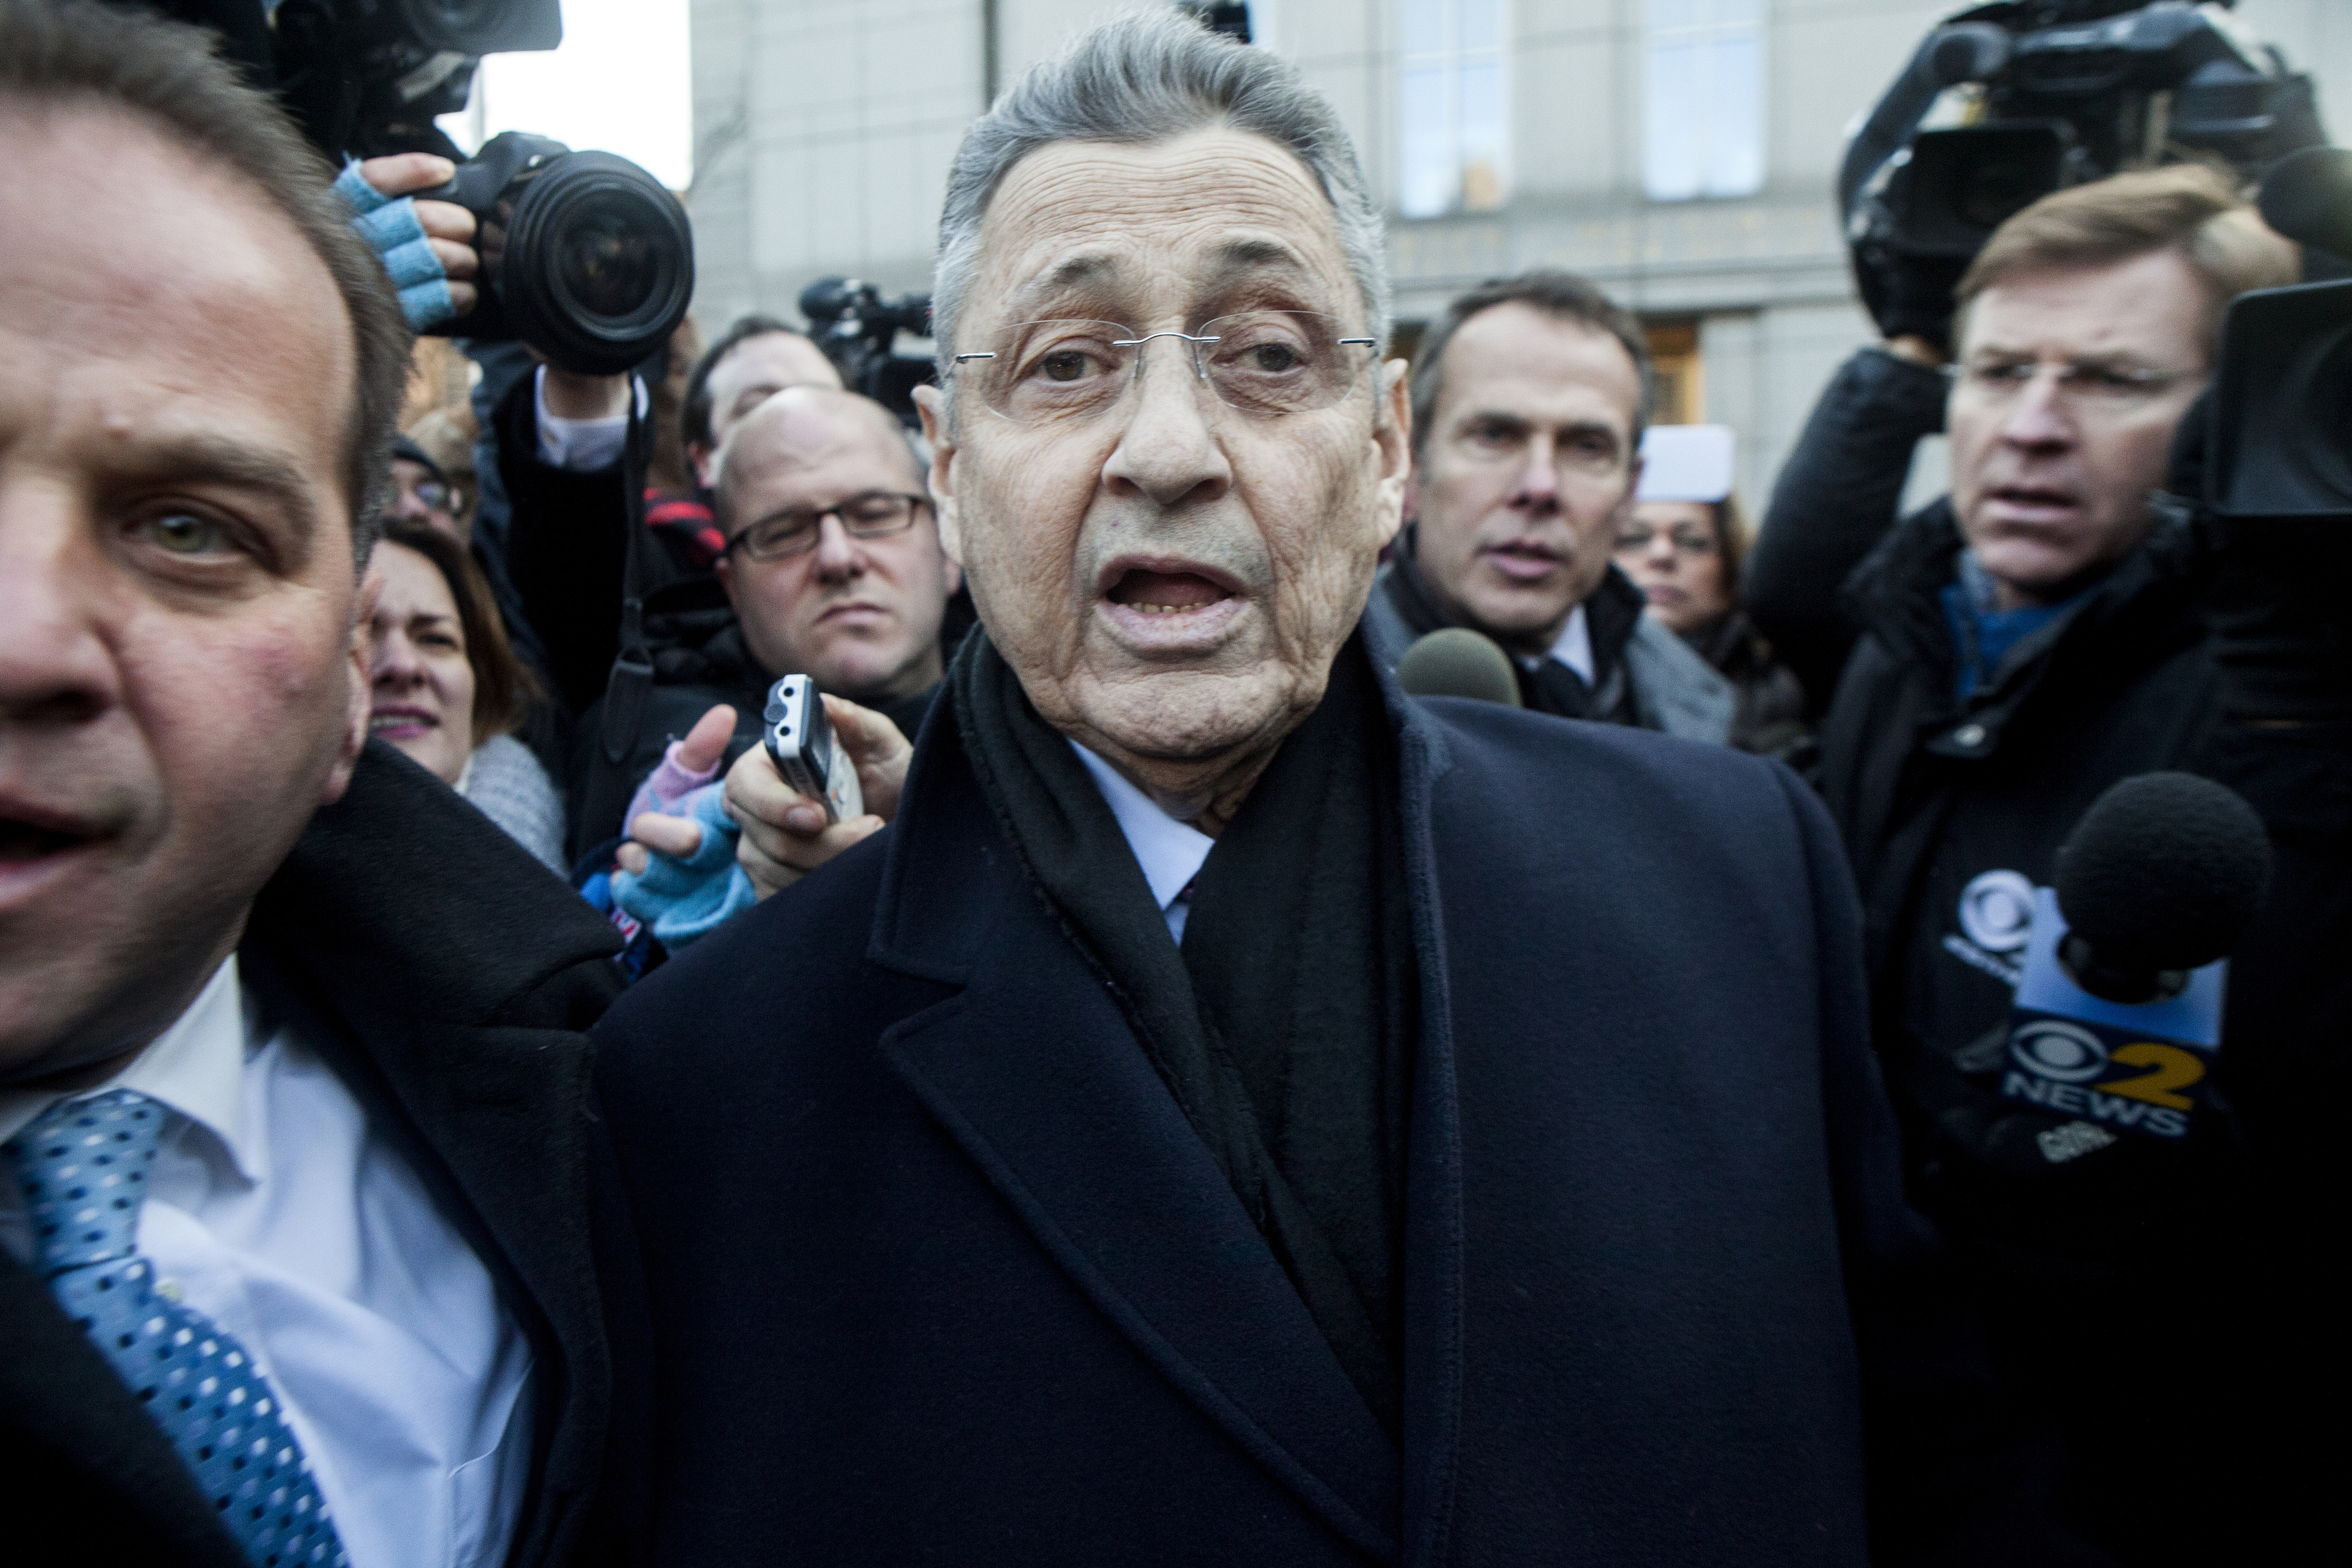 Assembly Speaker Sheldon Silver faces reporters after being arraigned on federal corruption charges Thursday. (New York Times photo)